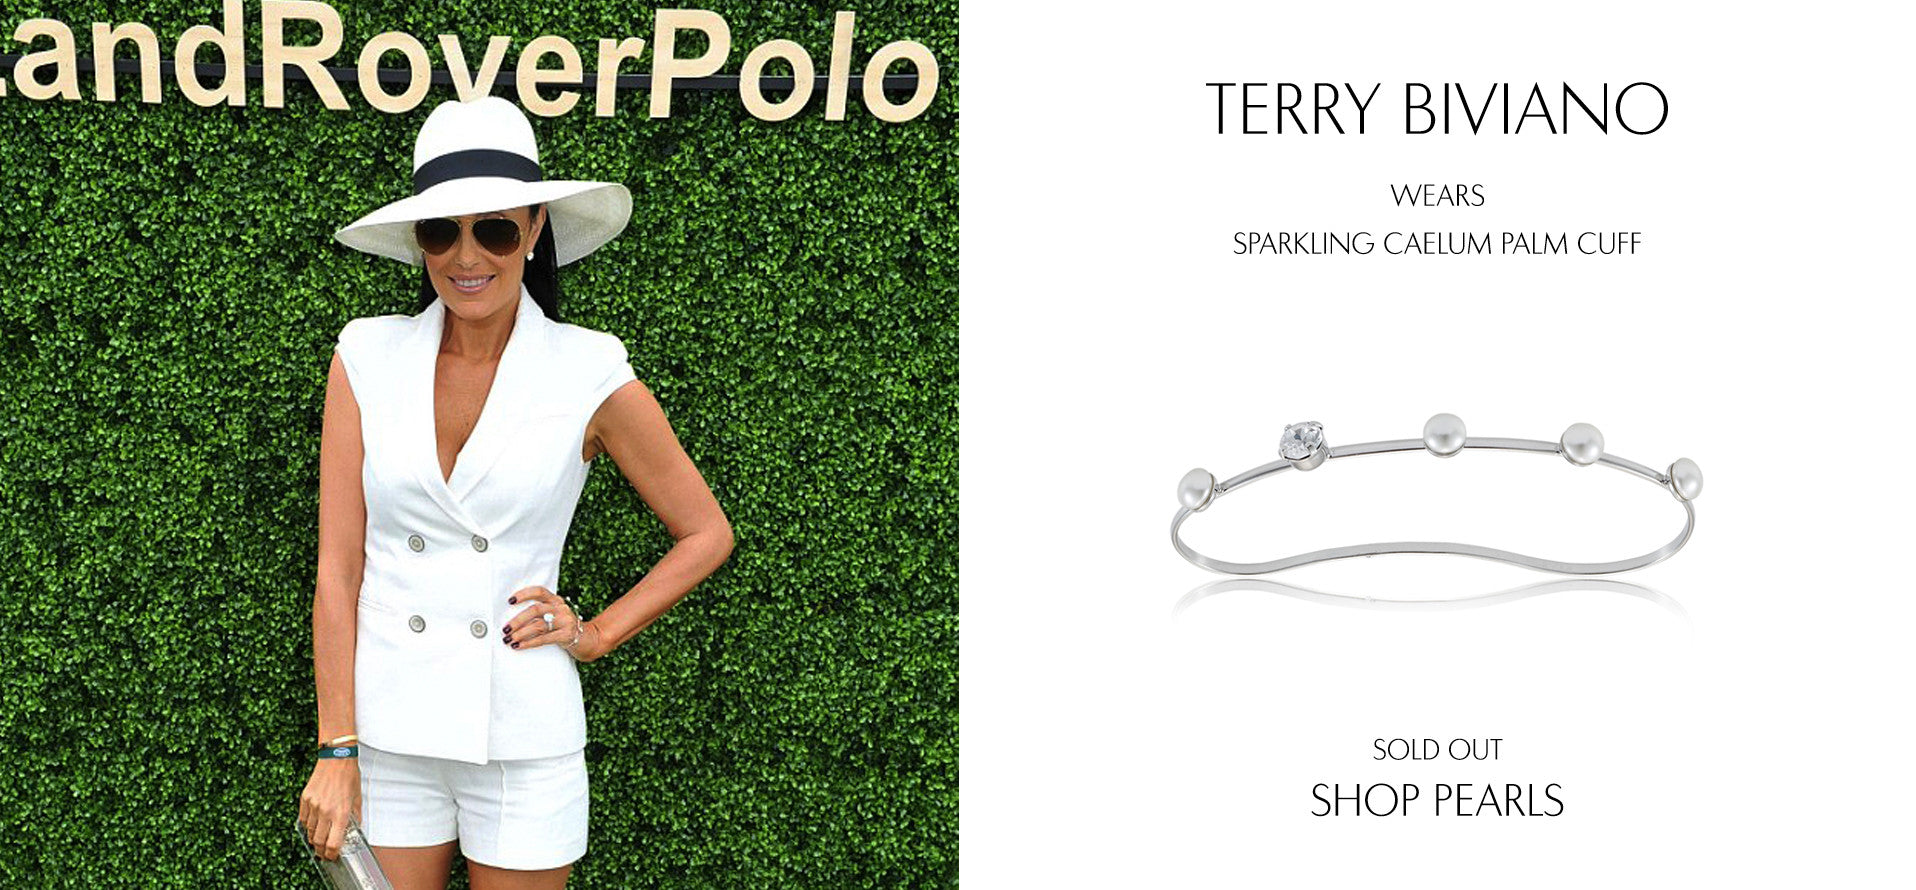 Socialite and Shoe Designer Terry Biviano wears Sarina Suriano Sparkling Caelum pearl palm cuff